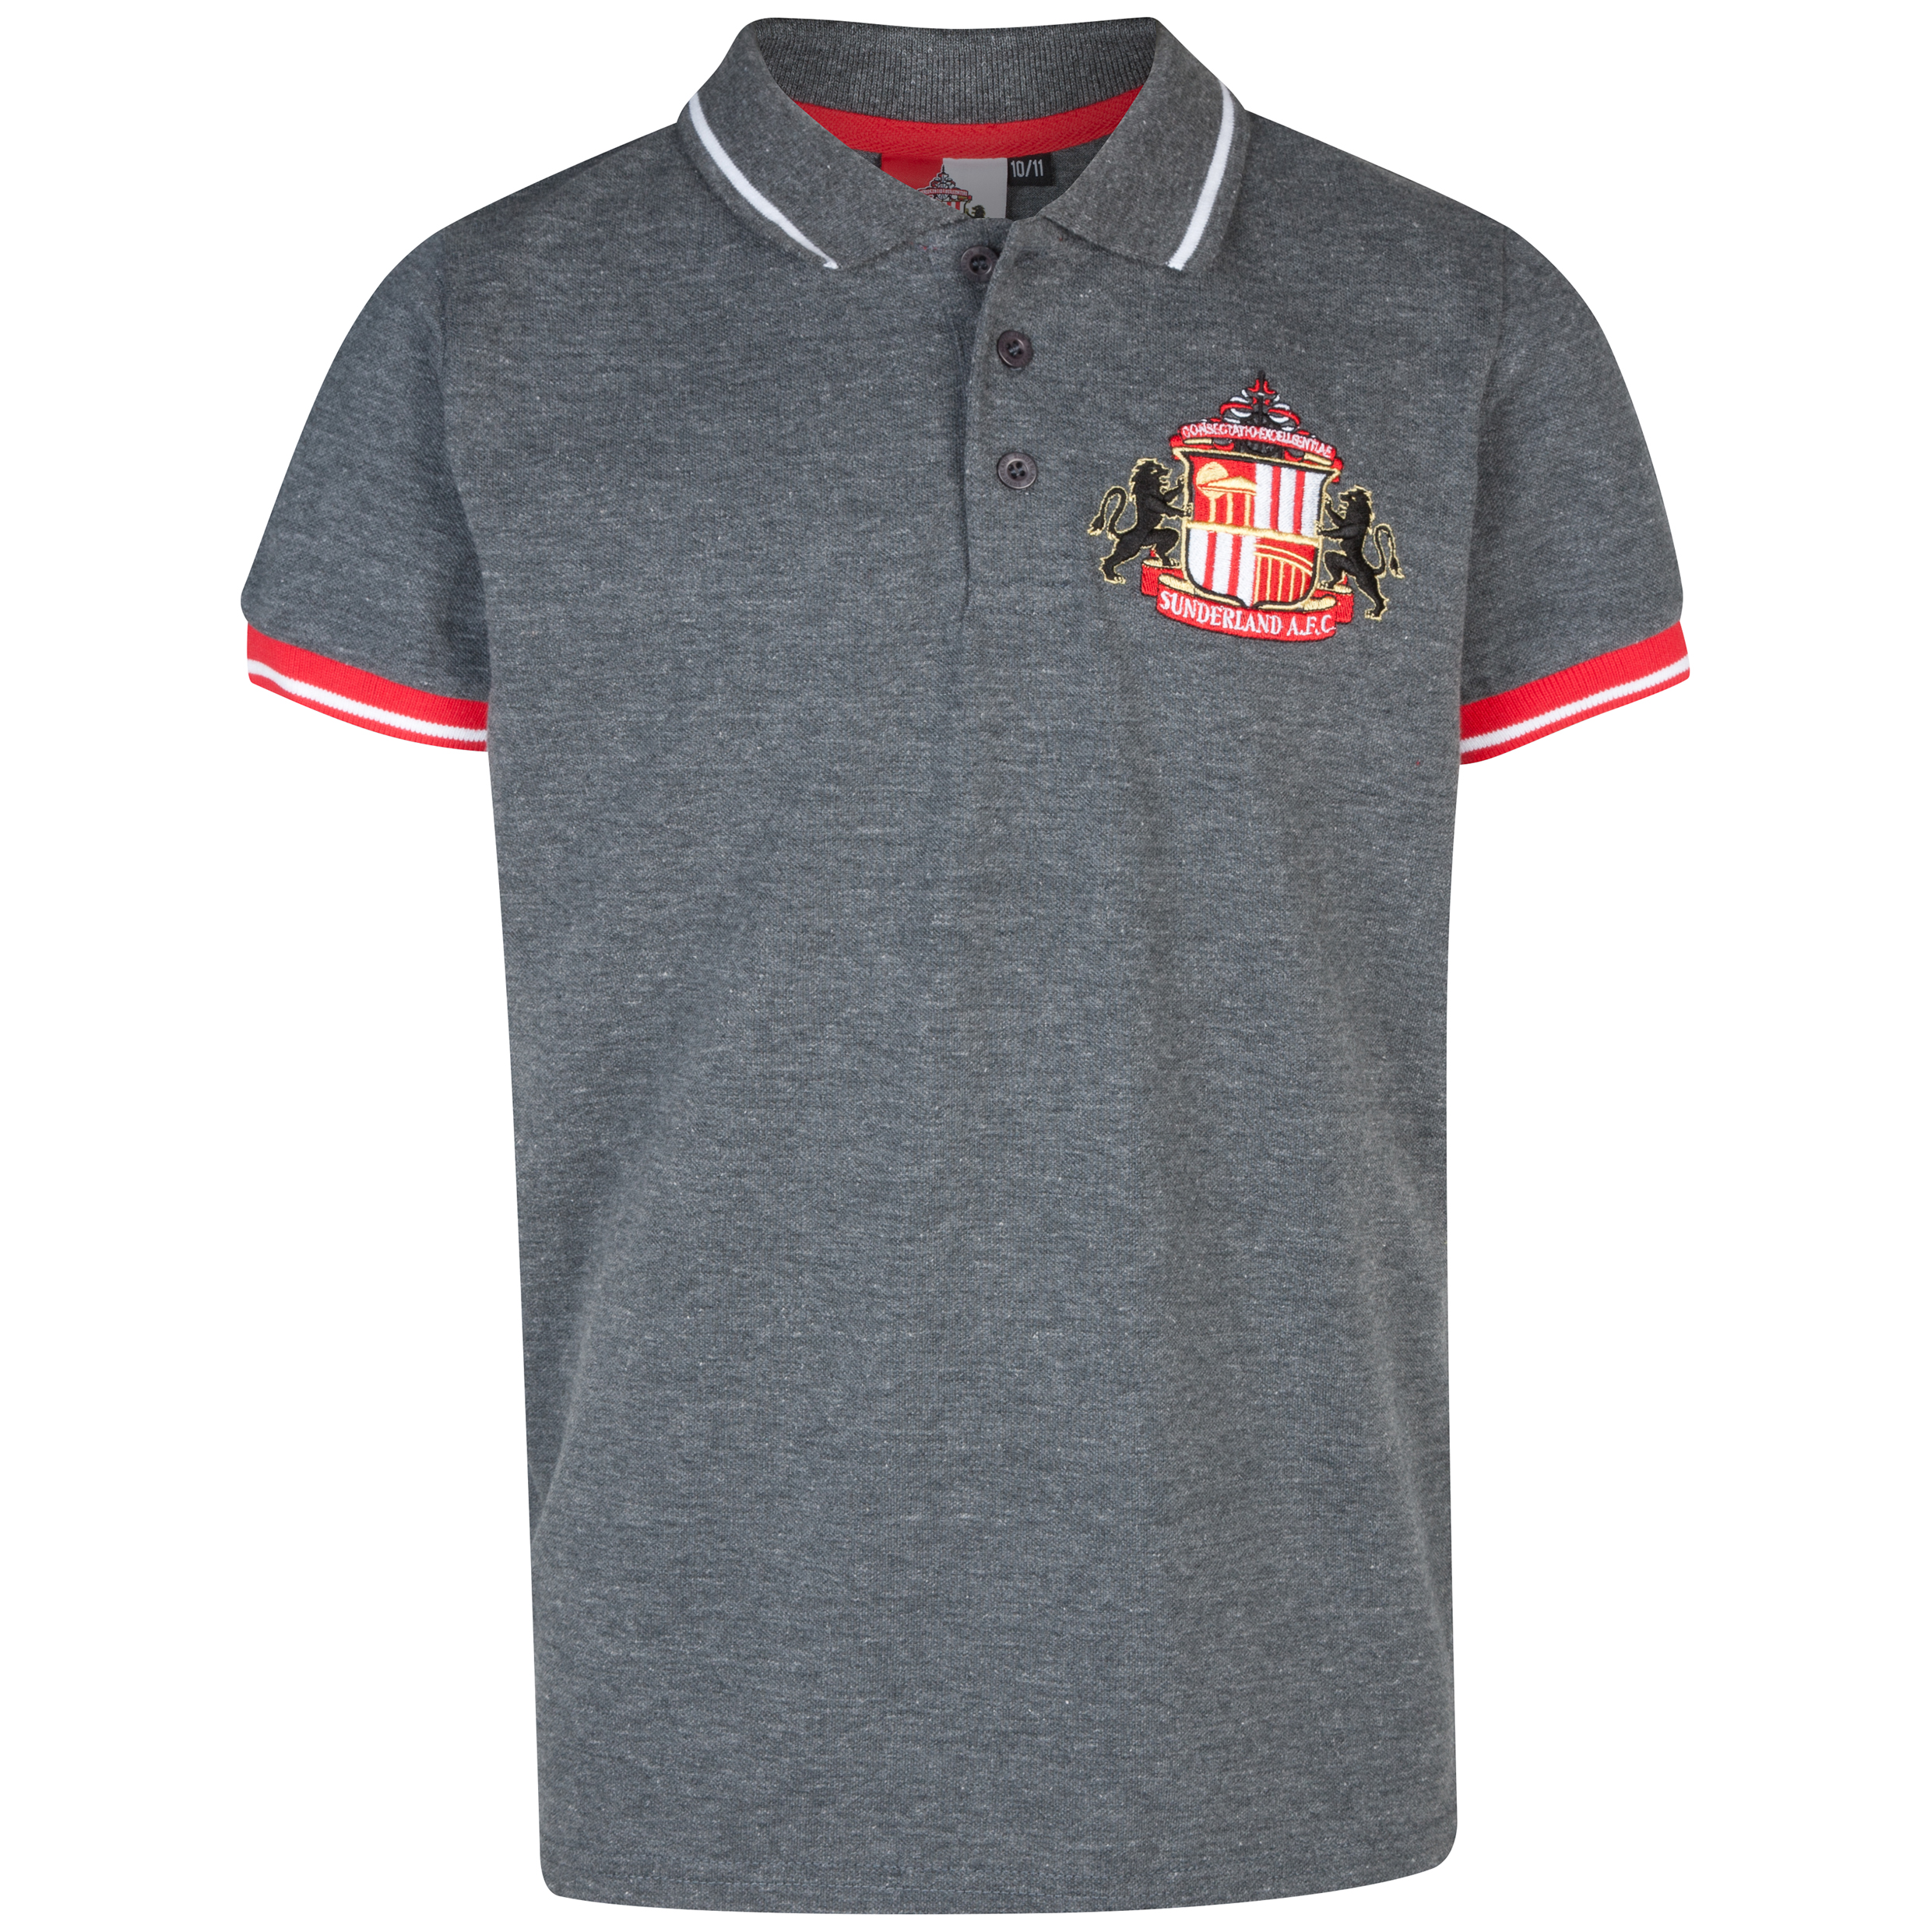 Sunderland Essentials Grounds Polo Shirt - Older Boys Charcoal